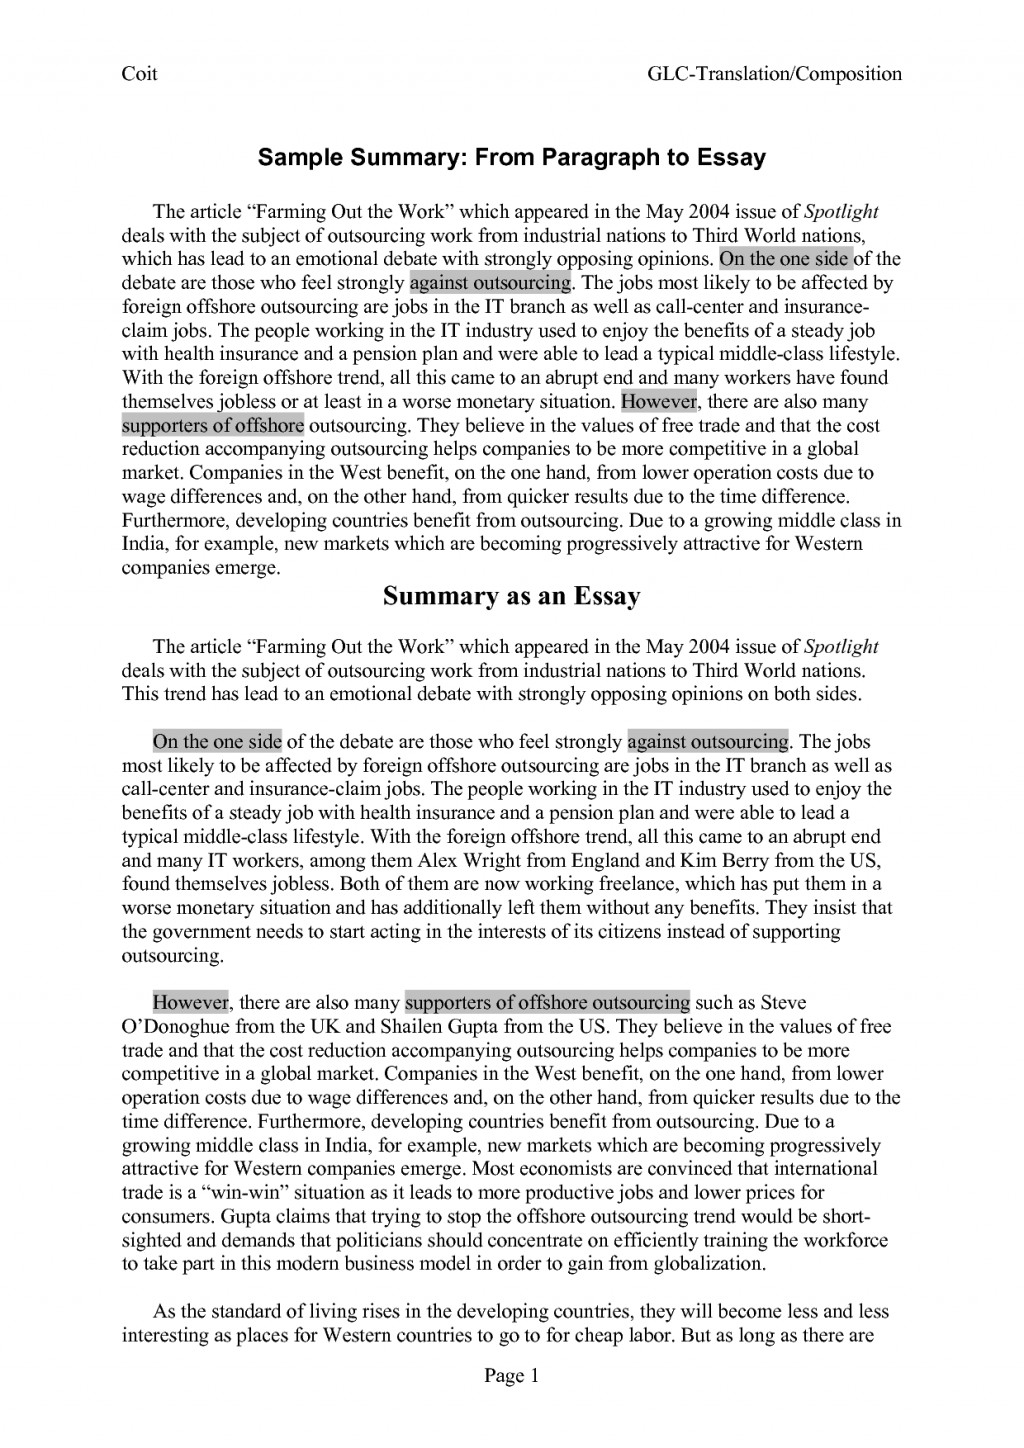 005 Essay Example Sample Summary Papers 248300 Imposing Research Paper Analysis Examples Executive Large